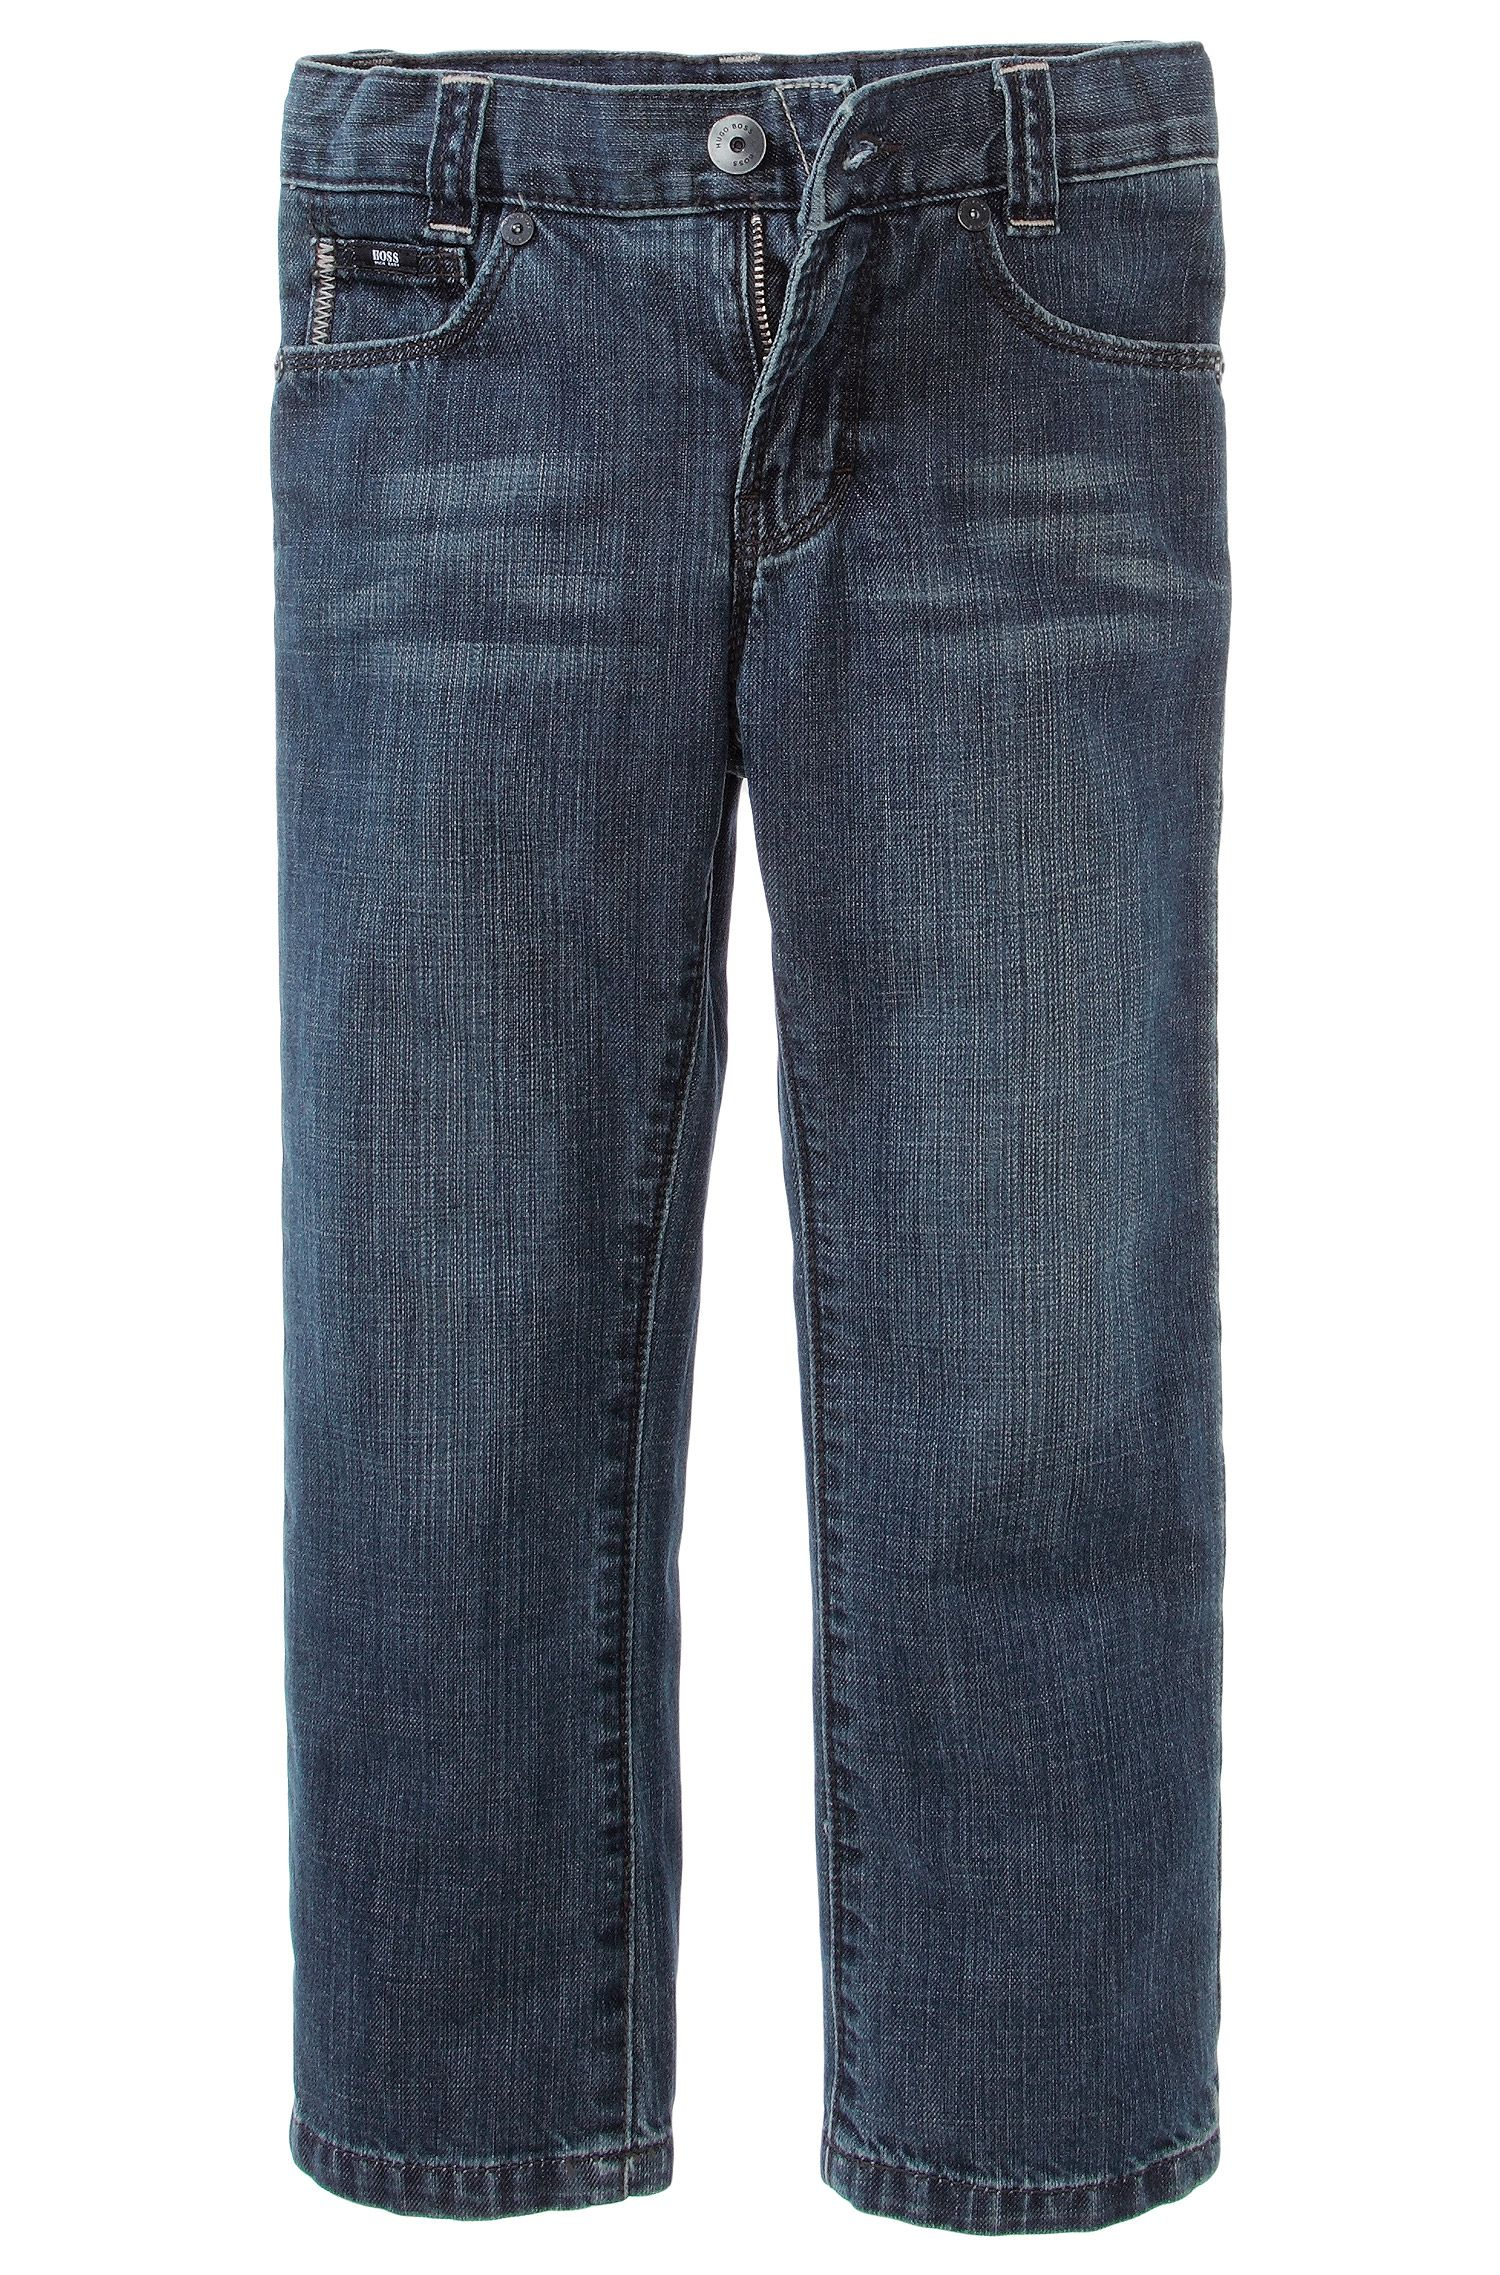 'J24244' | Boys Cotton Jeans